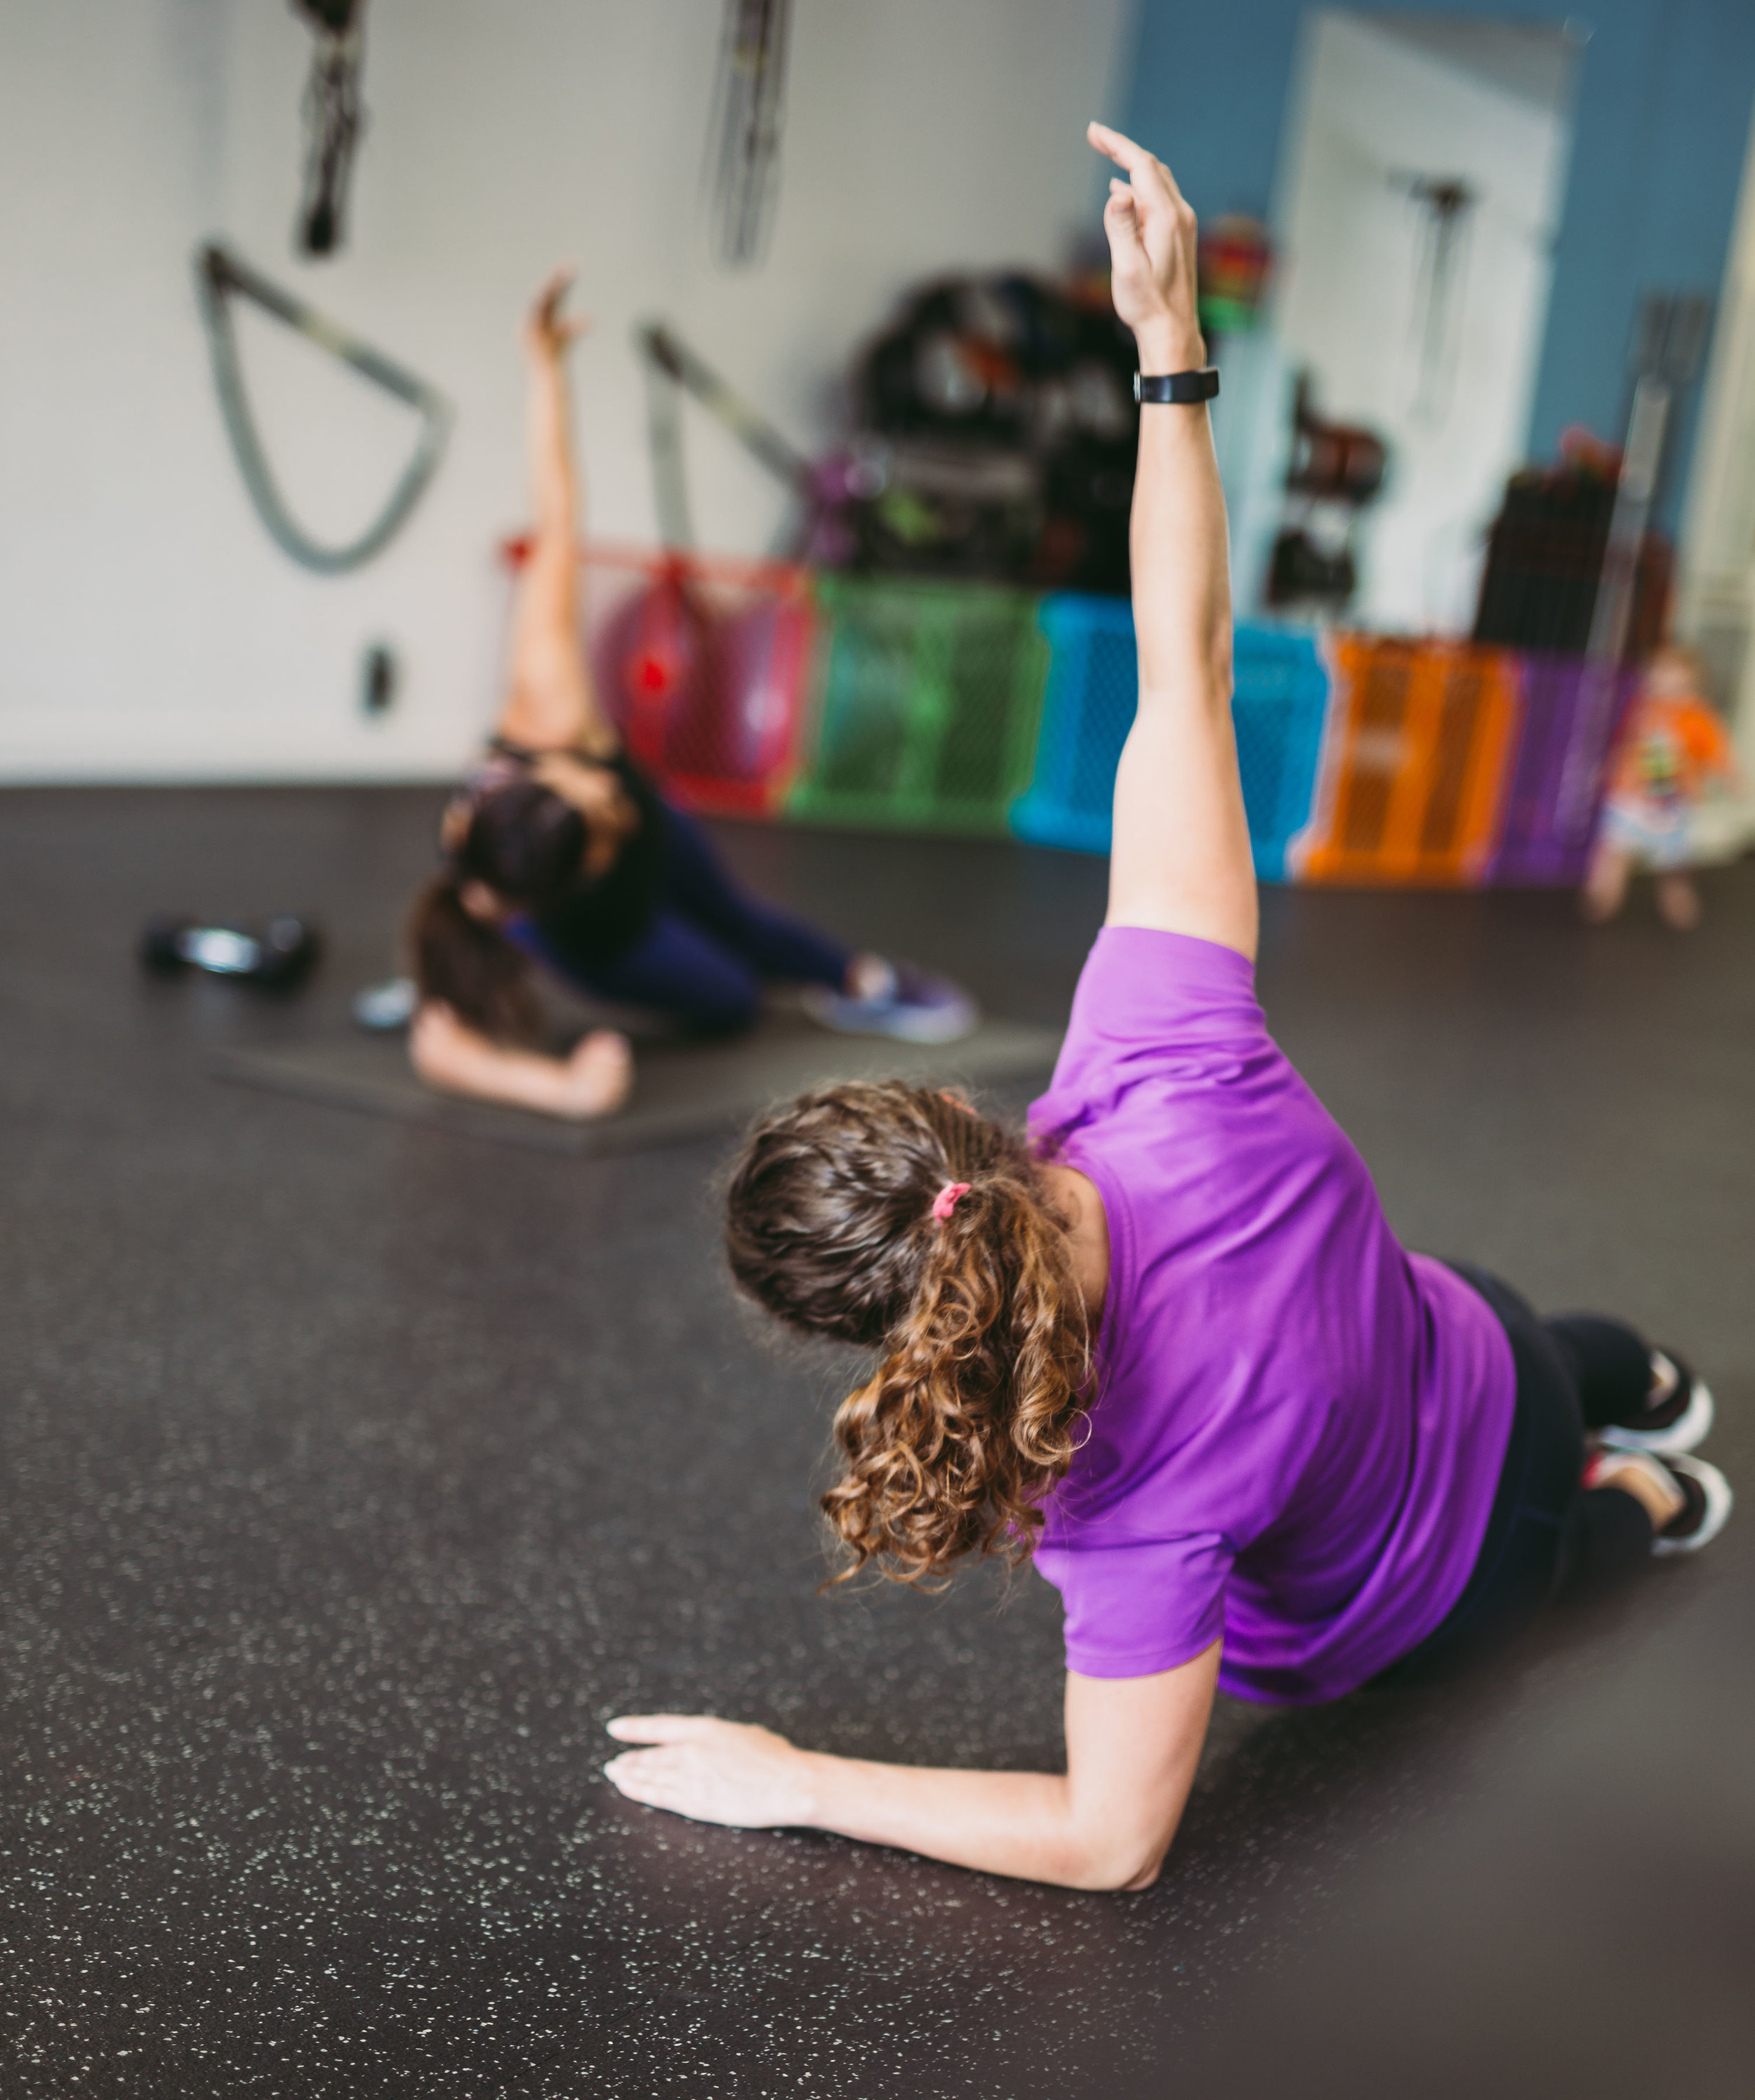 Don't see a class time that works for you? We offer one-on-one sessions for one-time visits, on-going regularly scheduled sessions, or private small group sessions with a certified personal trainer!